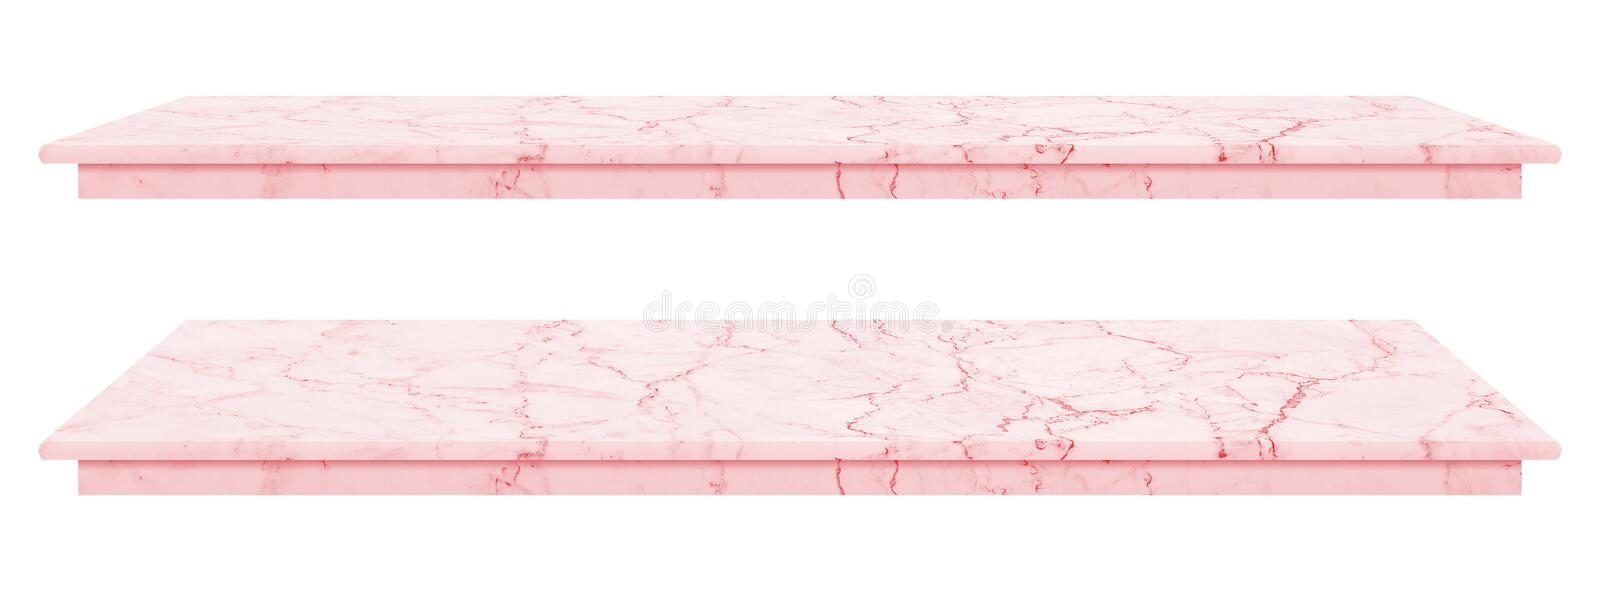 Marble table, counter top pink surface, Stone slab for display products isolated on white background have clipping path royalty free stock photos